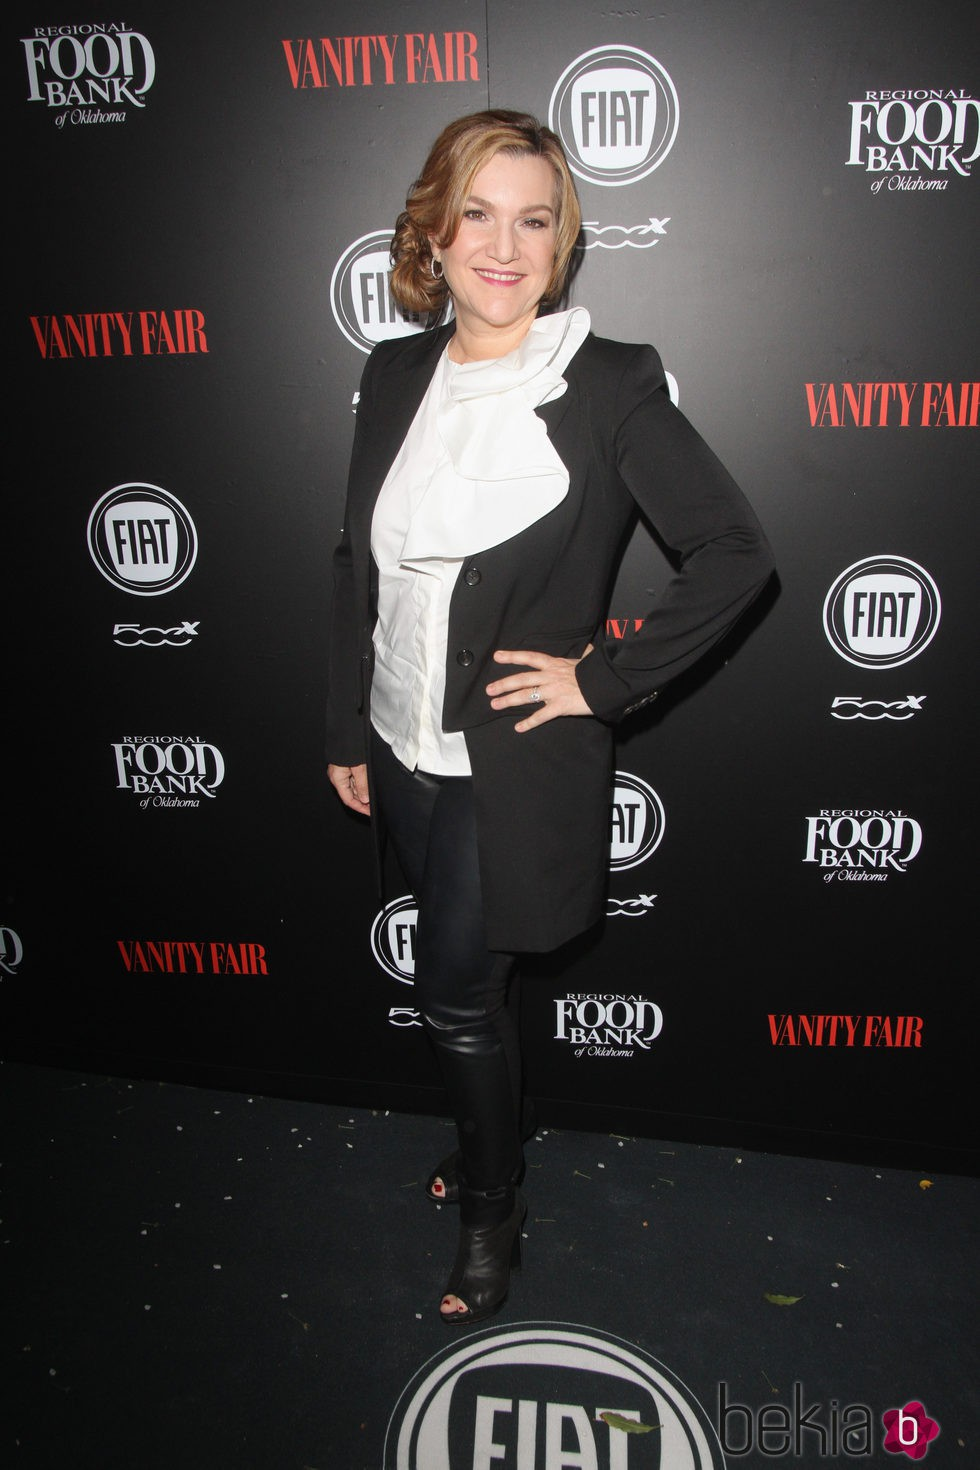 Krista Smith en una fiesta organizada por Vanity Fair en Hollywood